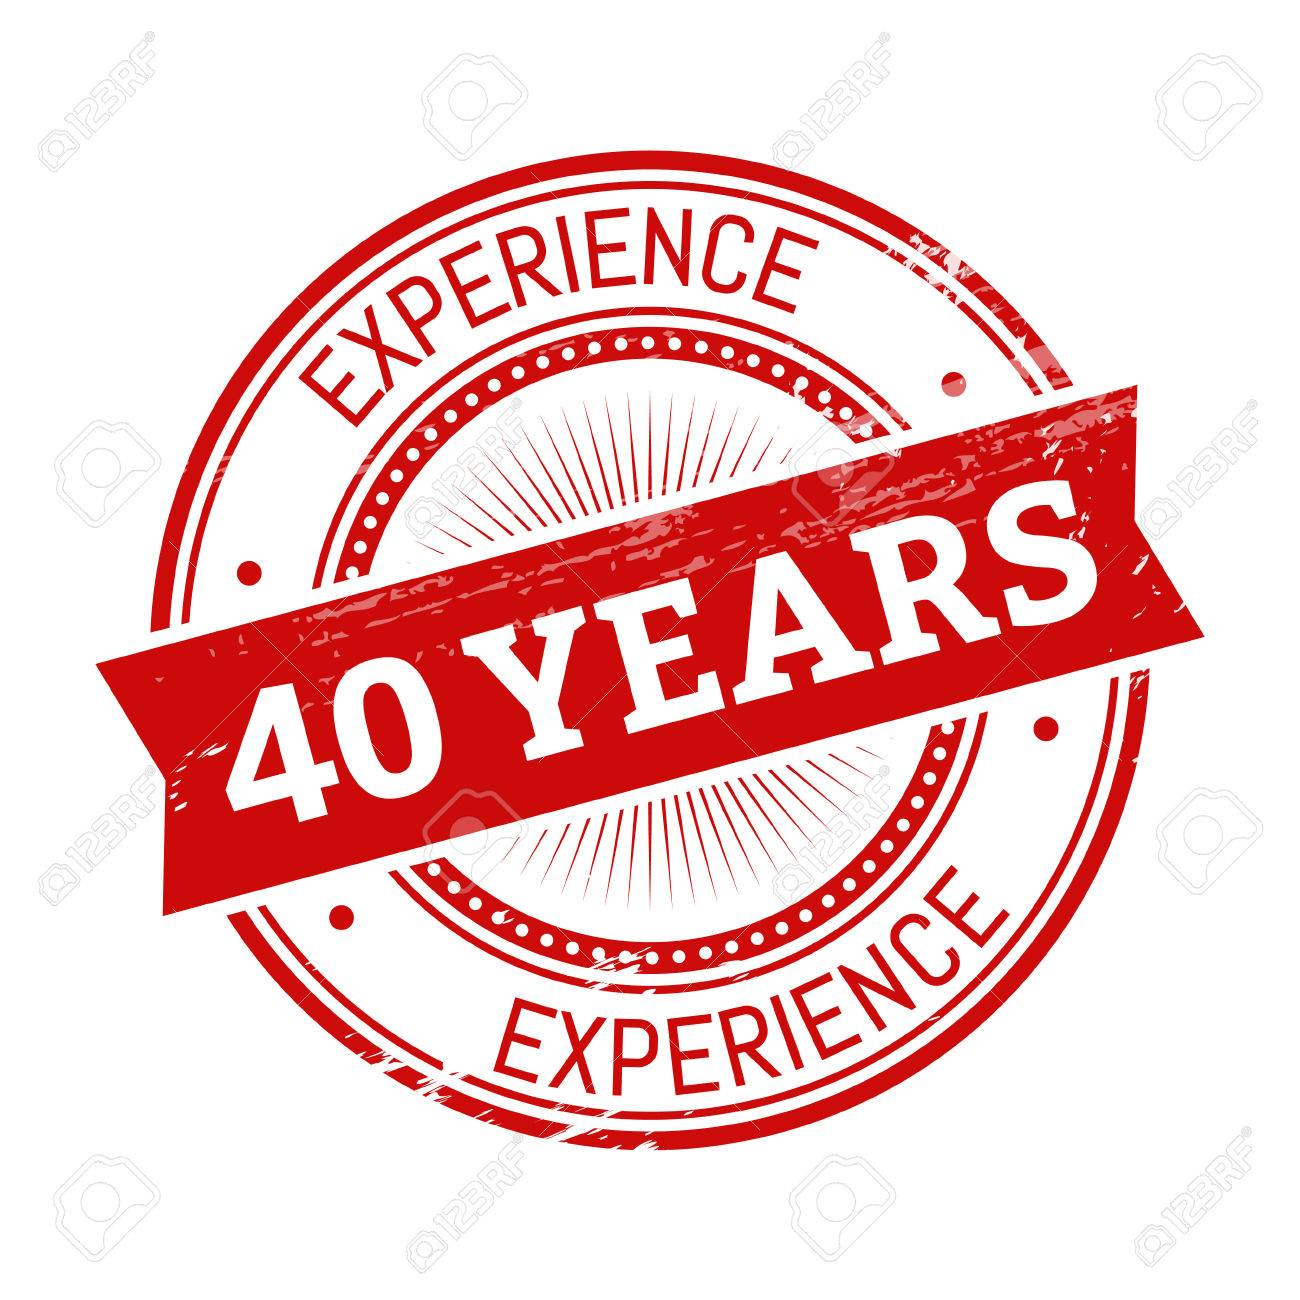 40 years experience text, red color round stamper illustration - 82943693